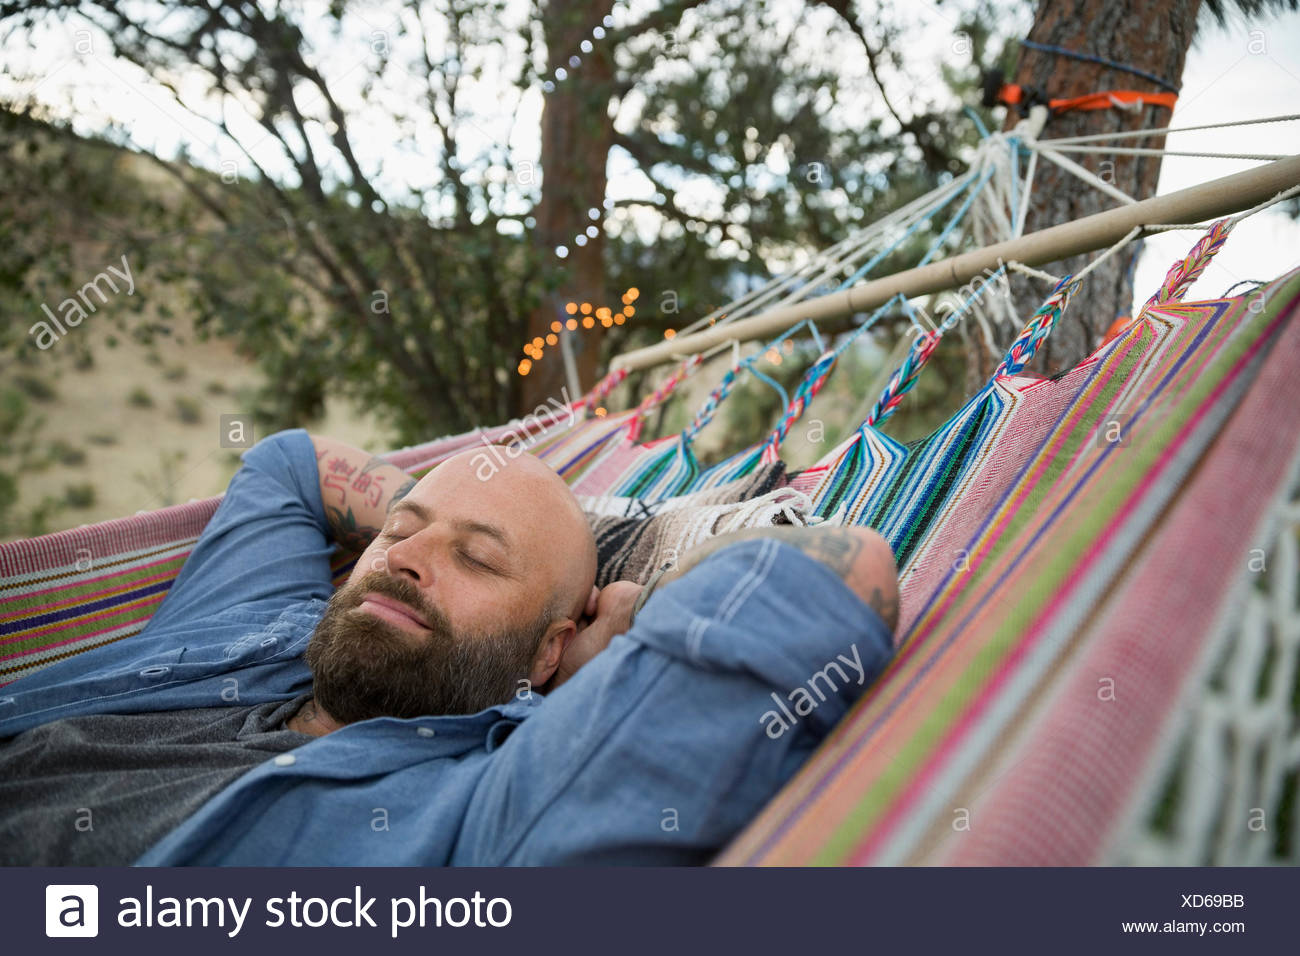 Serene man relaxing in hammock - Stock Image